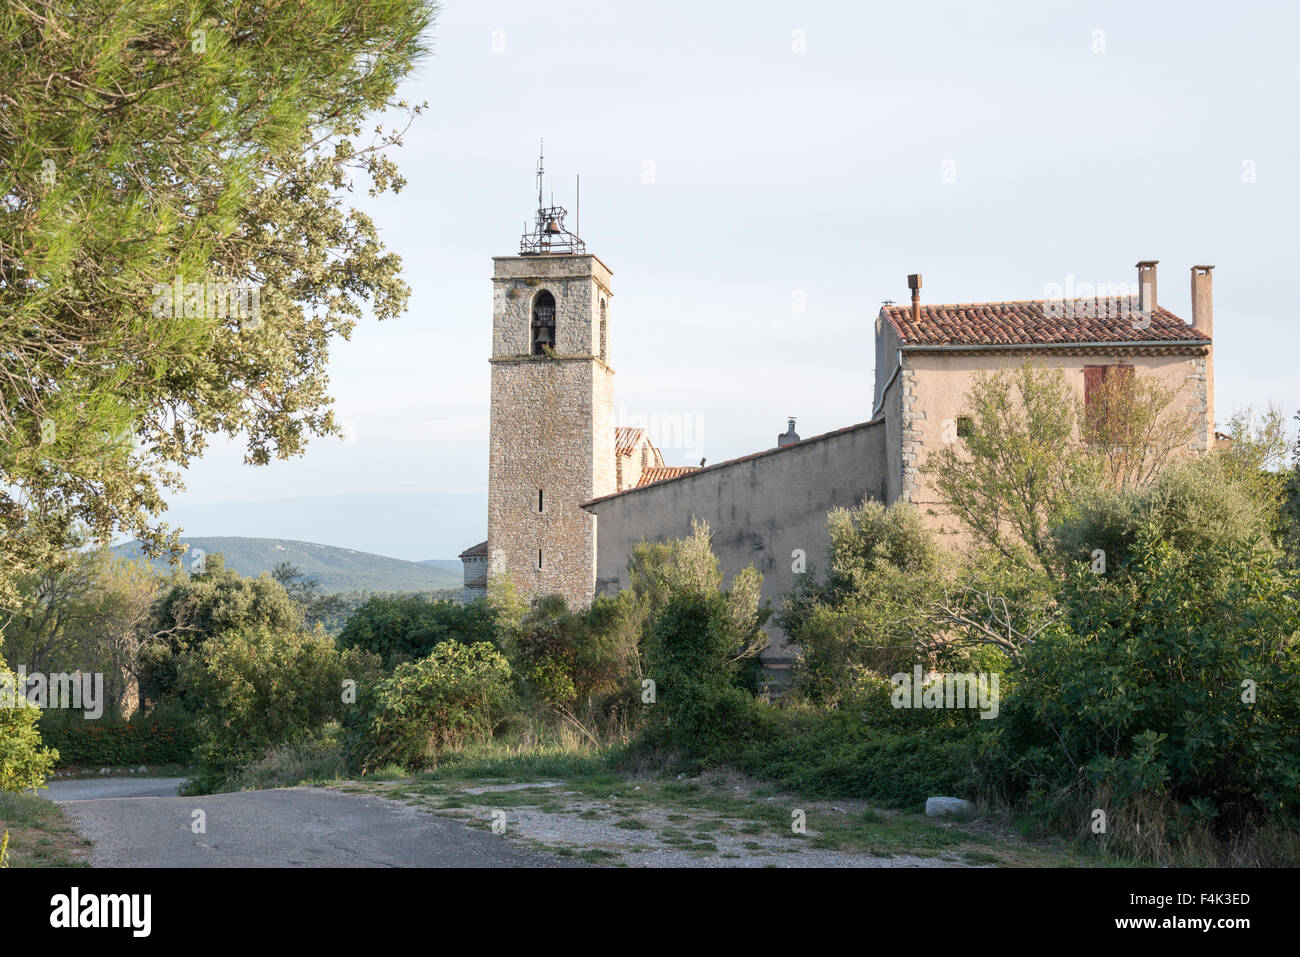 The Romanesque church St Trinity Chapell at the hilltop village of St Julien-La-Montagnier Provence France - Stock Image